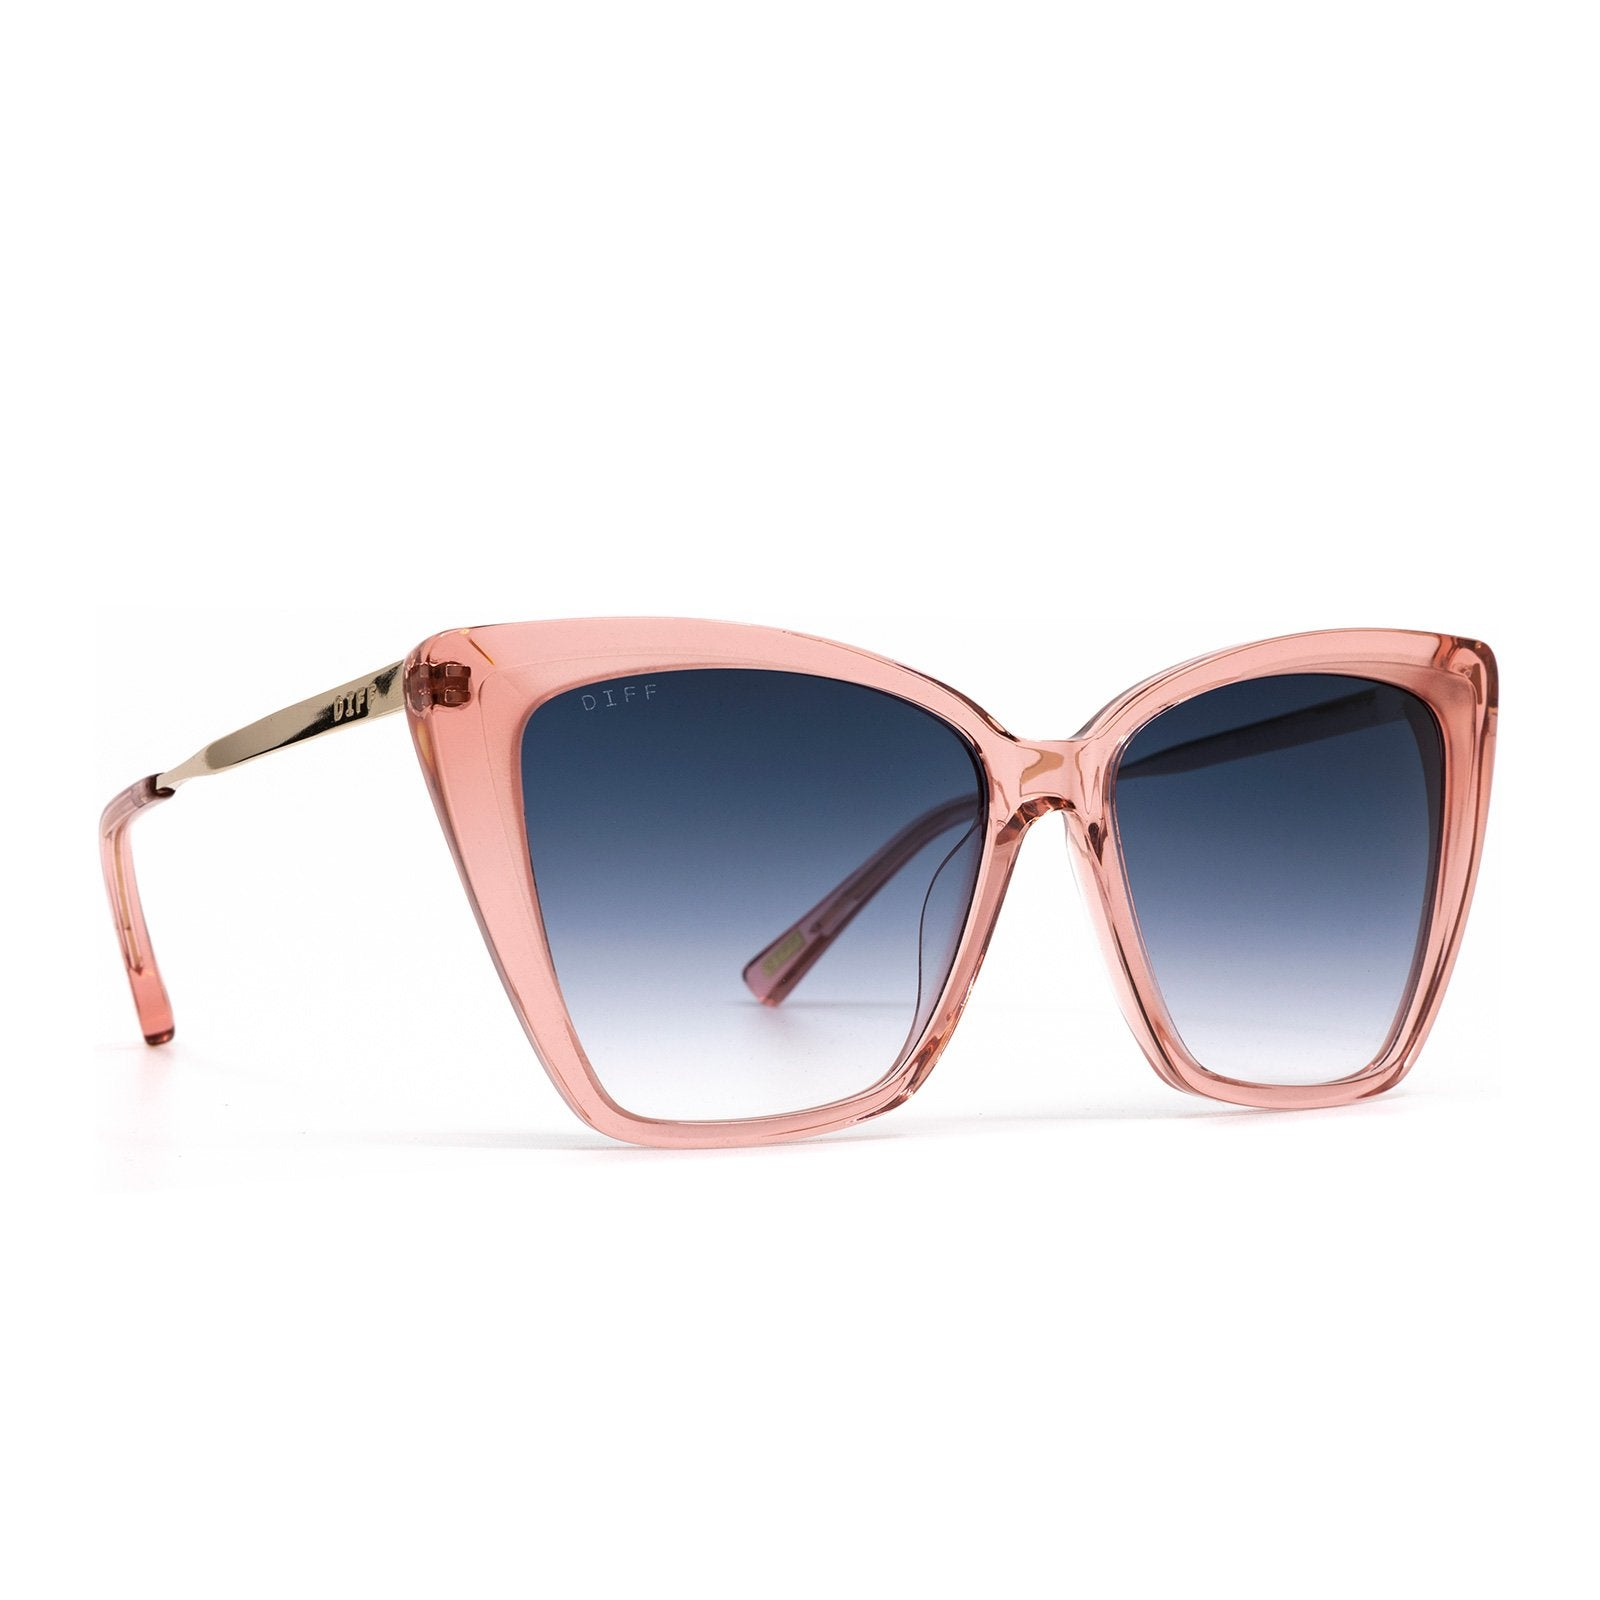 BECKY II sunglasses with light pink crystal frames and blu gradient lens  angle view